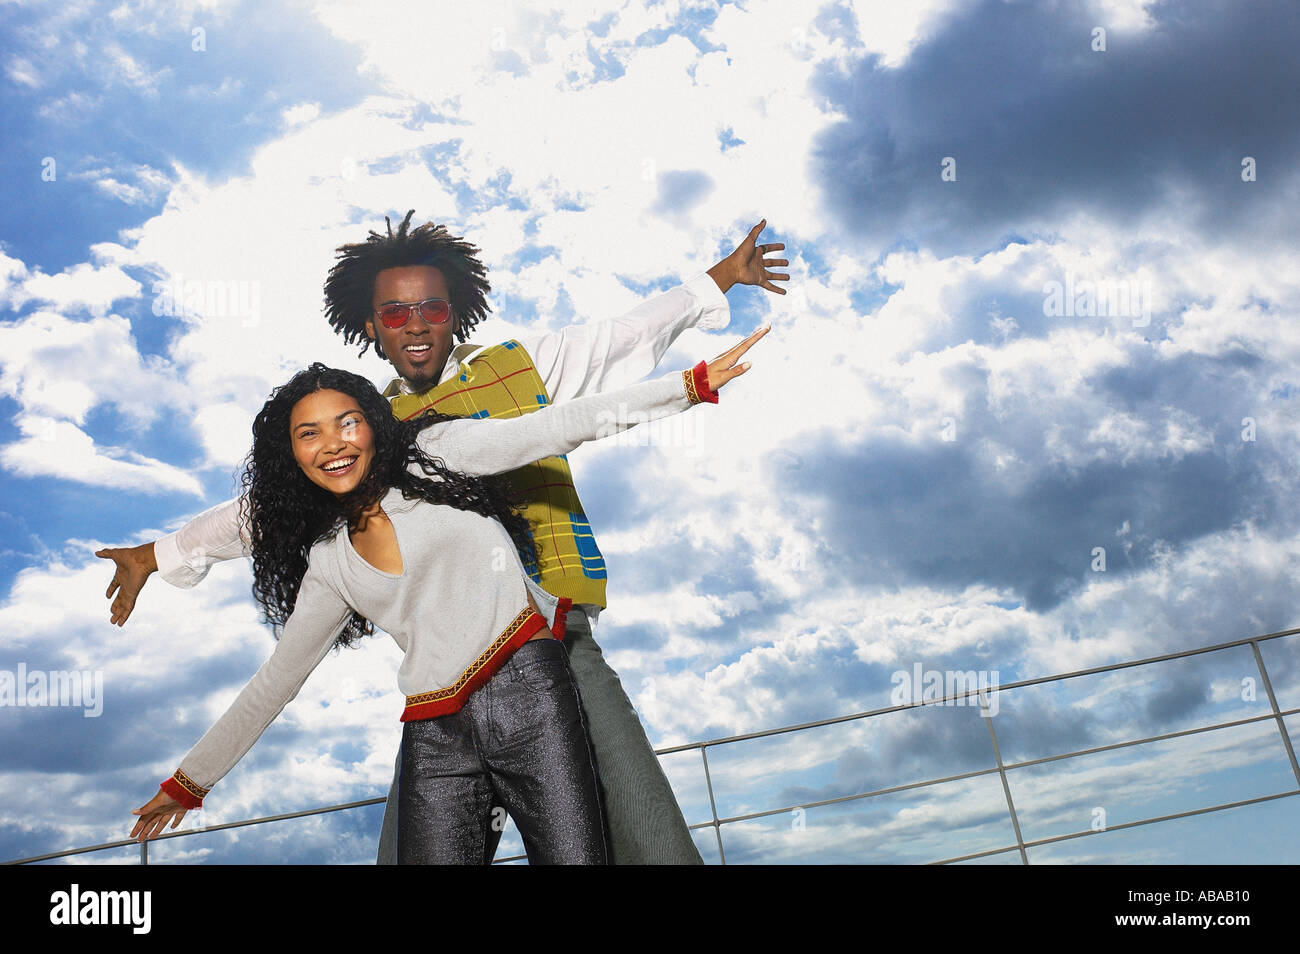 Man and woman with cloudy sky - Stock Image